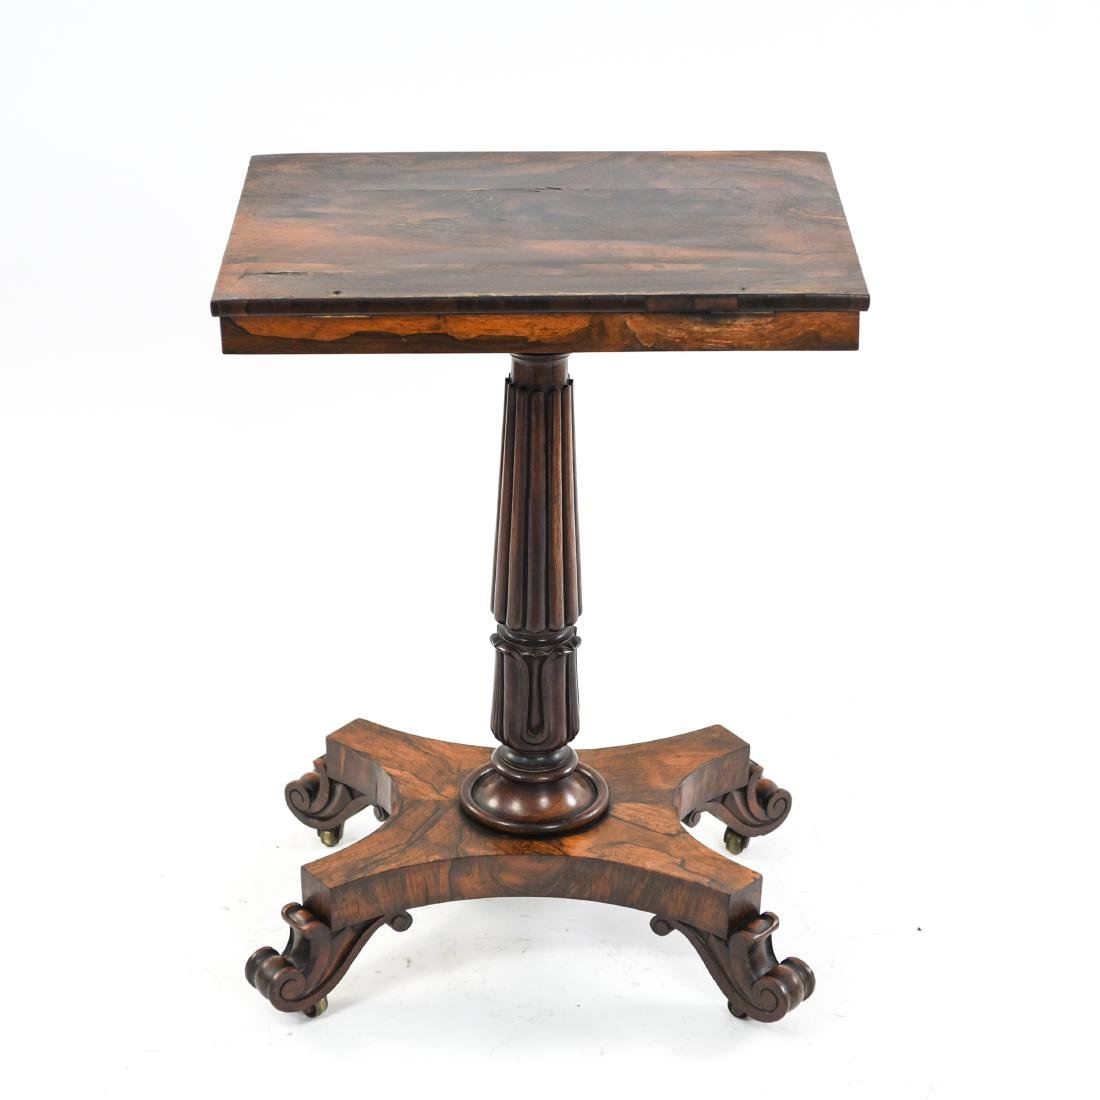 19TH C. REGENCY ROSEWOOD MANUSCRIPT STAND